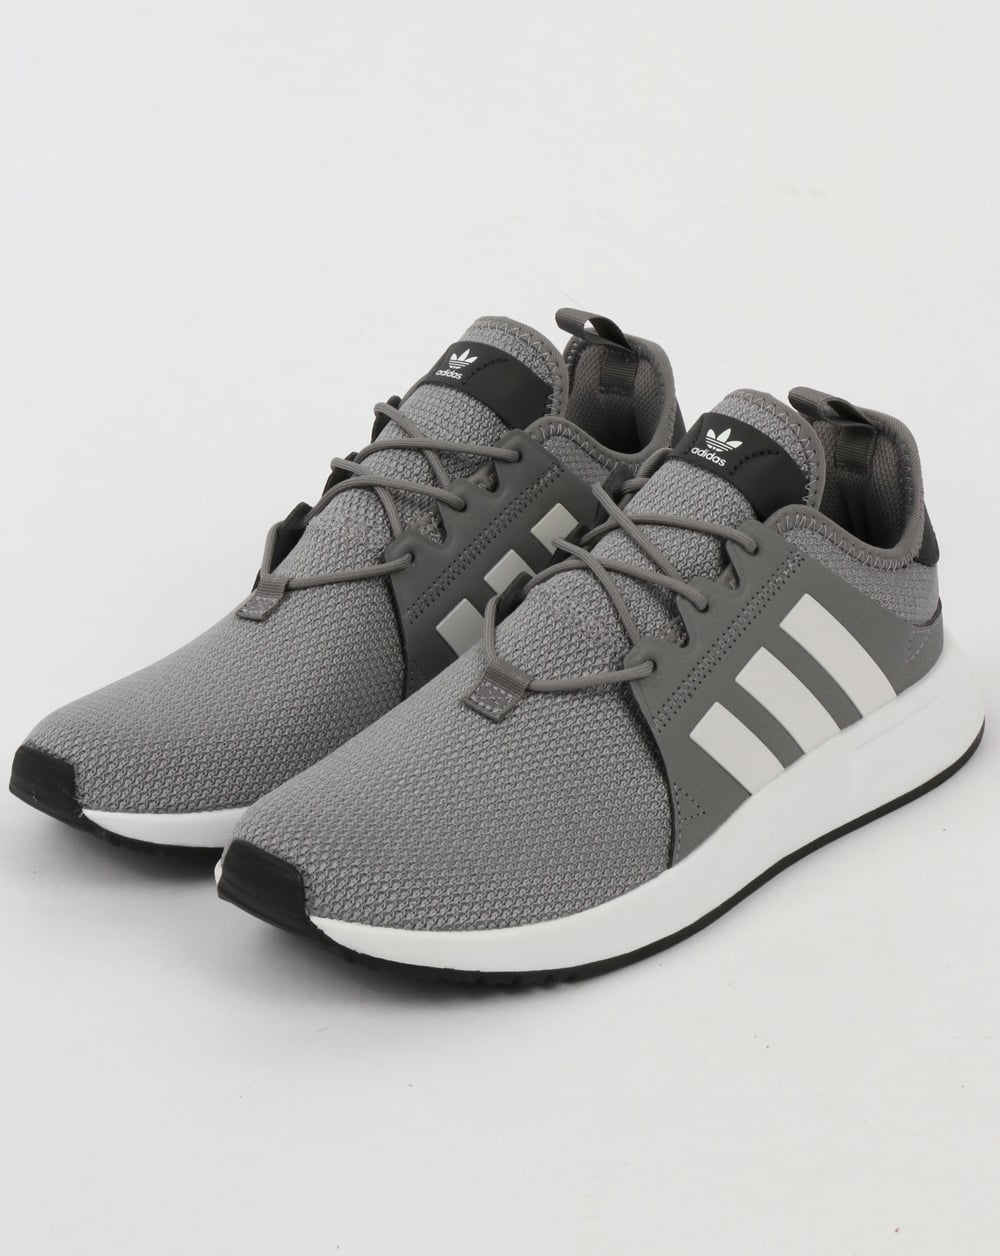 4935bdd1cb2e Adidas XPLR Trainers Grey  White Carbon